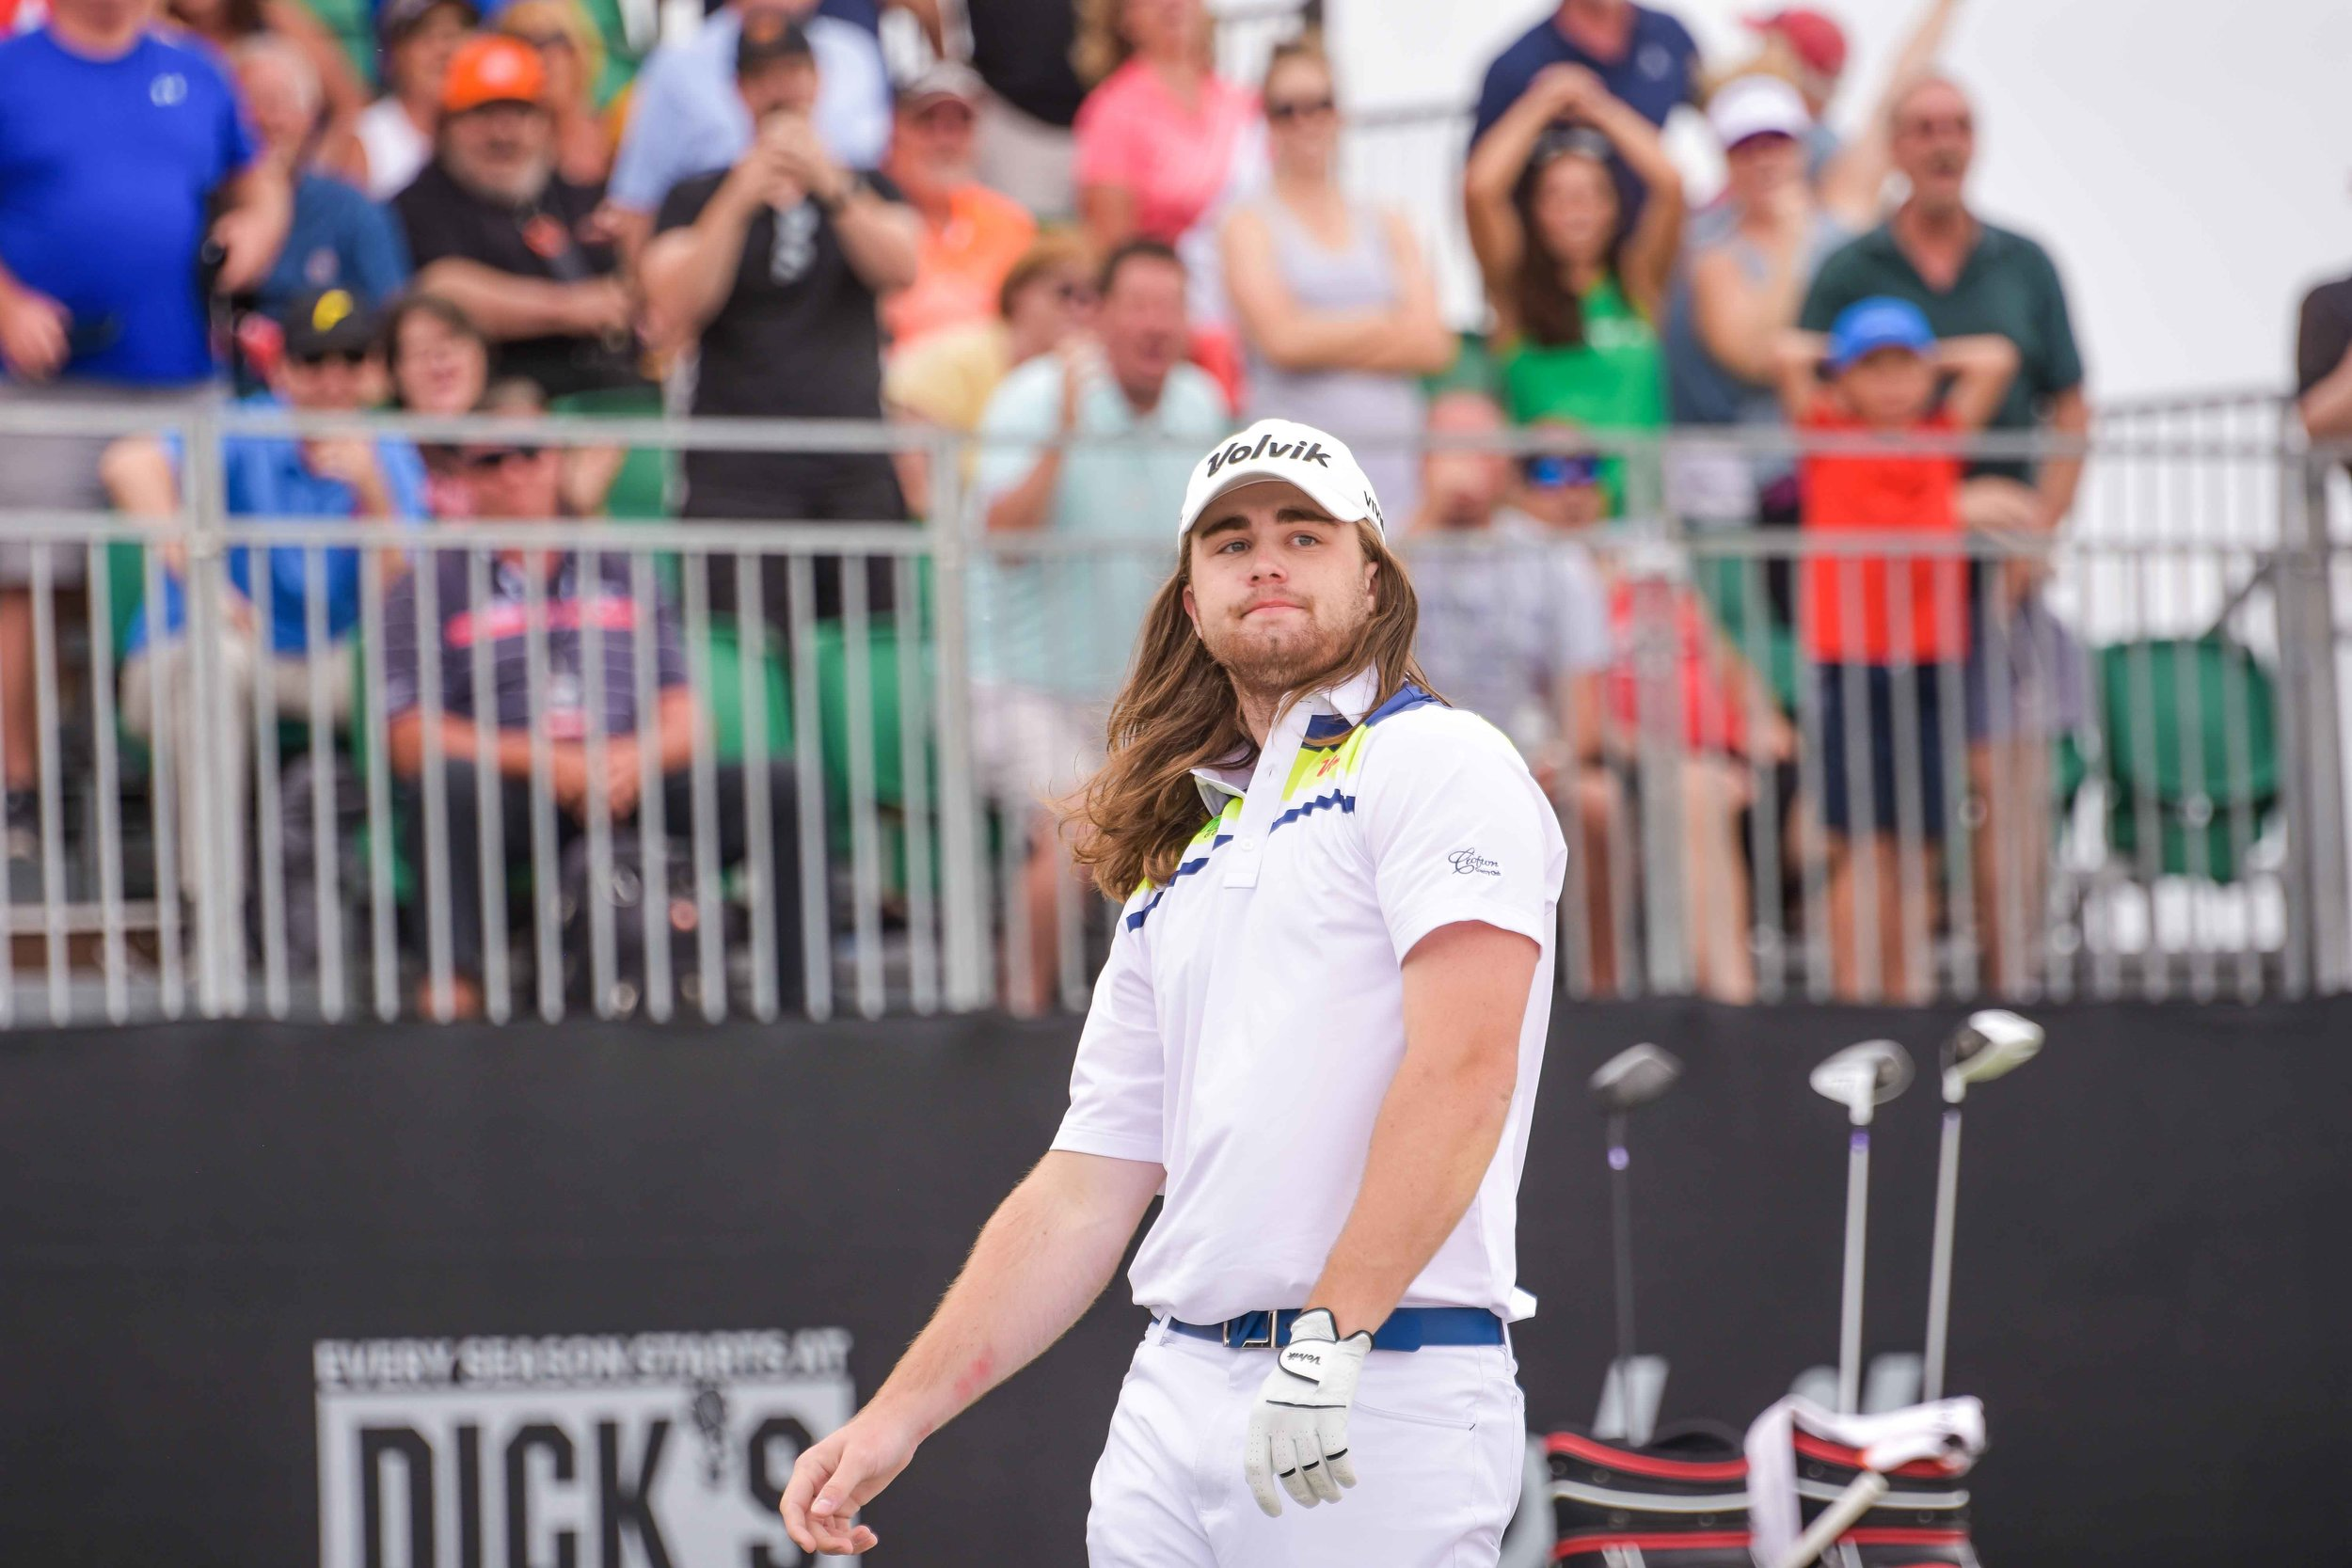 Kyle Berkshire reacts to his final drive of 466 yards coming up 8 yards short of champion Tim Burke.